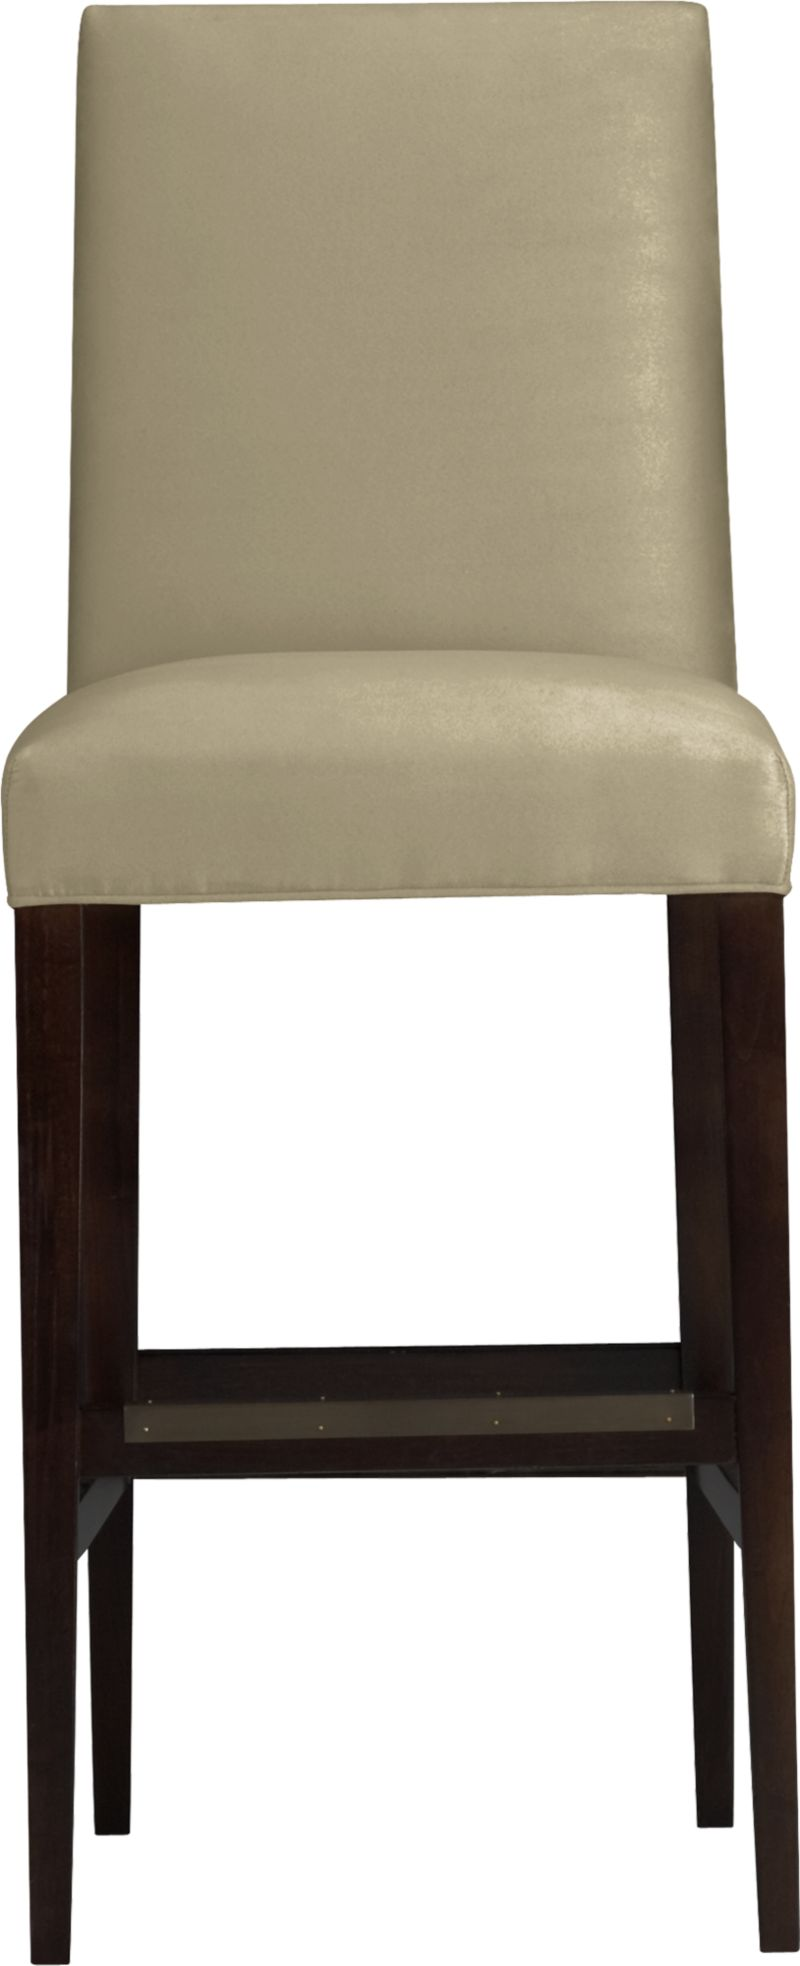 "Our Miles barstool is a fresh new classic with polished proportions and casual formality. Padded seat and gently curved back are upholstered in an easy-care textural poly blend in neutral sand. Slim hickory-colored hardwood legs taper gracefully to the floor.<br /><br />After you place your order, we will send a fabric swatch via next day air for your final approval. We will contact you to verify both your receipt and approval of the fabric swatch before finalizing your order.<br /><br /><NEWTAG/><ul><li>Eco-friendly construction</li><li>Certified sustainable solid engineered hardwood frame</li><li>Soy- or plant-based polyfiber cushions</li><li>Solid maple legs with a hickory finish</li><li>Poly-cotton blend fabric</li><li>30""H seat sized for bars</li><li>Made in North Carolina, USA</li></ul>"